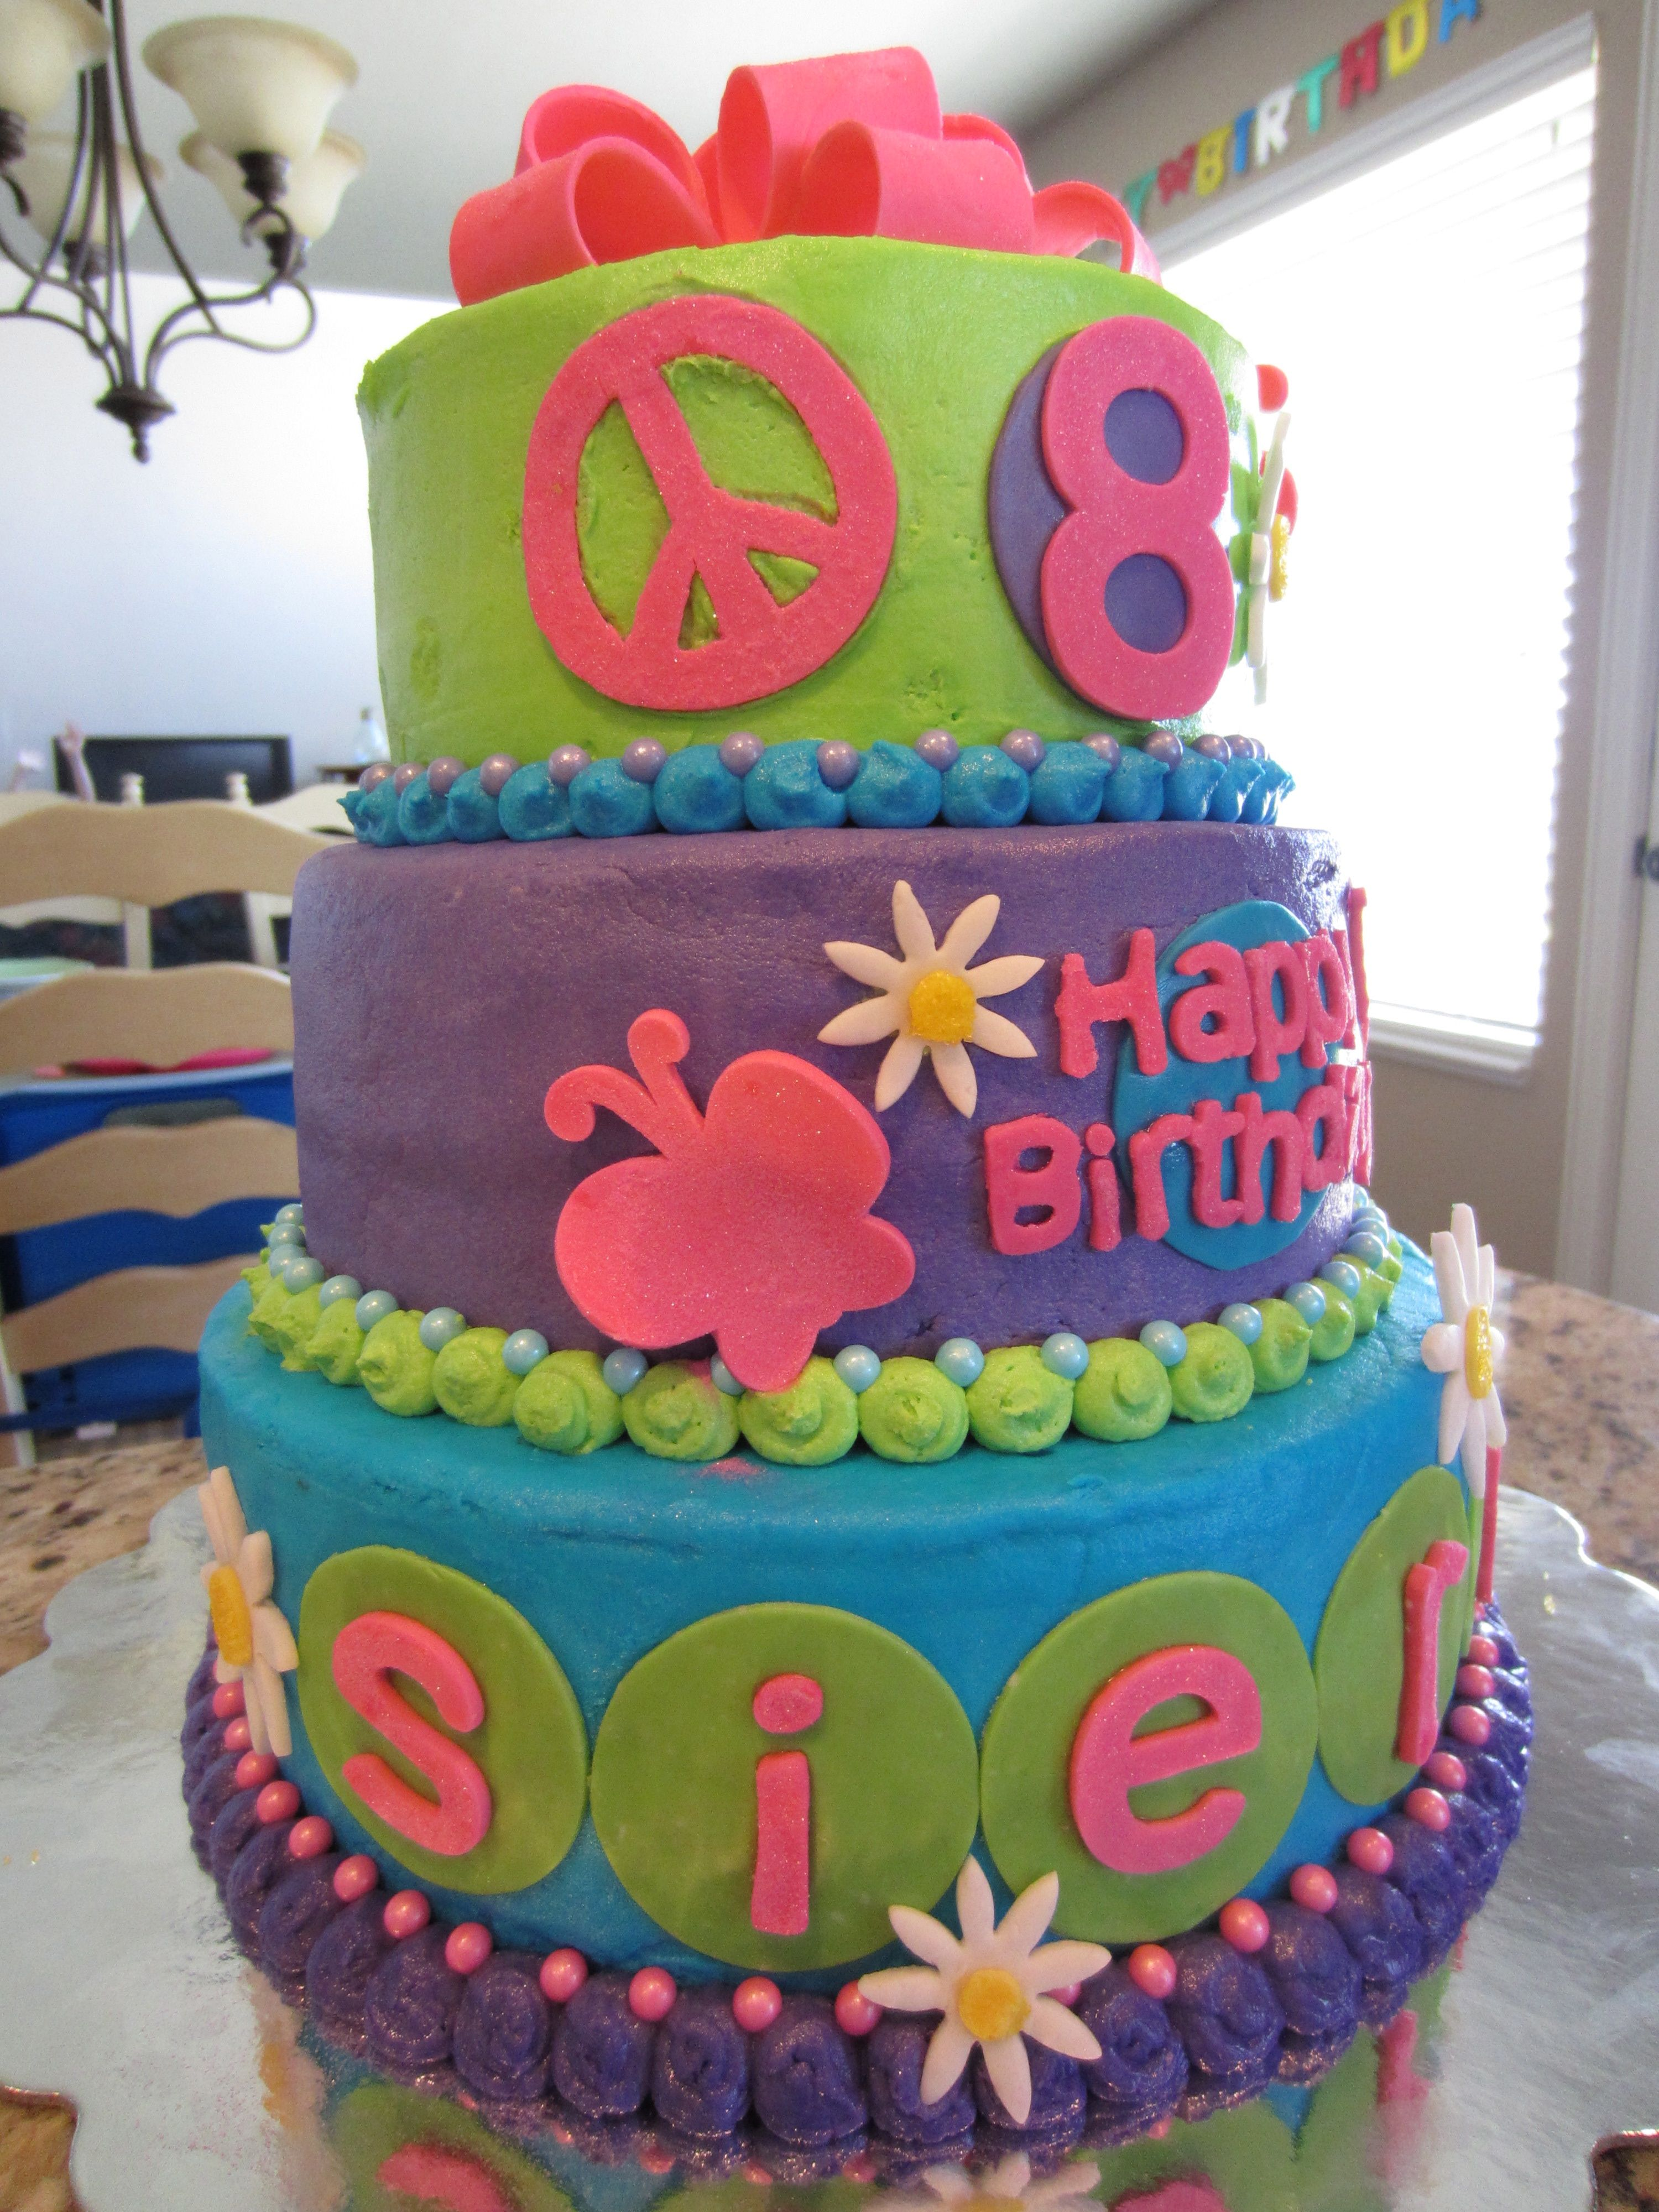 8 Year Old Girl Birthday Cake